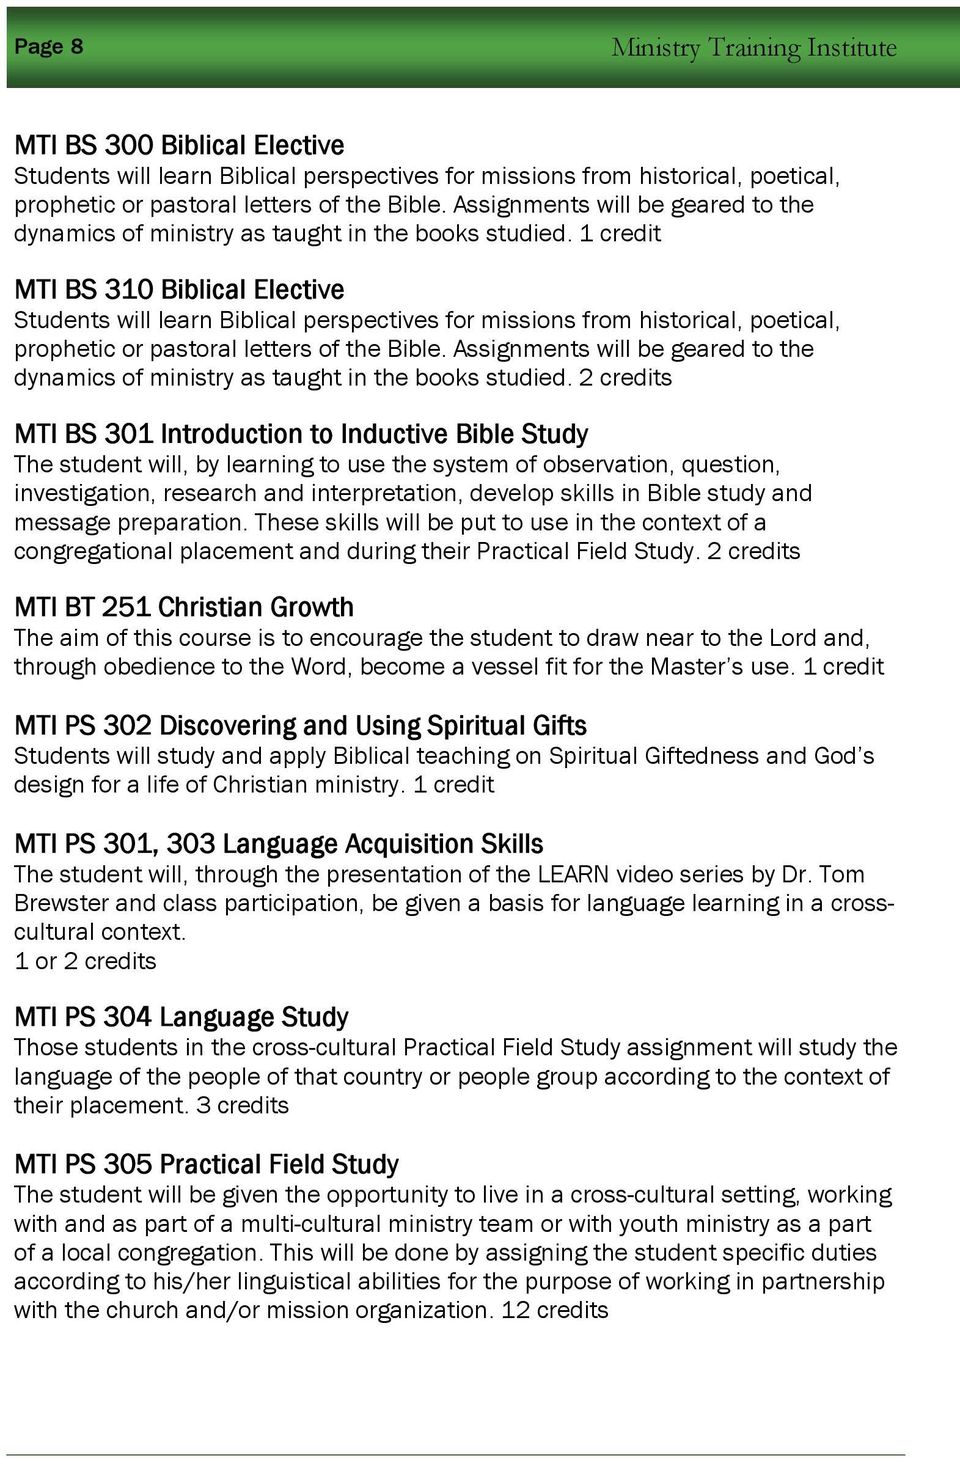 1 credit MTI BS 310 Biblical Elective Students will learn Biblical perspectives for missions from historical, poetical, prophetic or pastoral letters of the Bible.